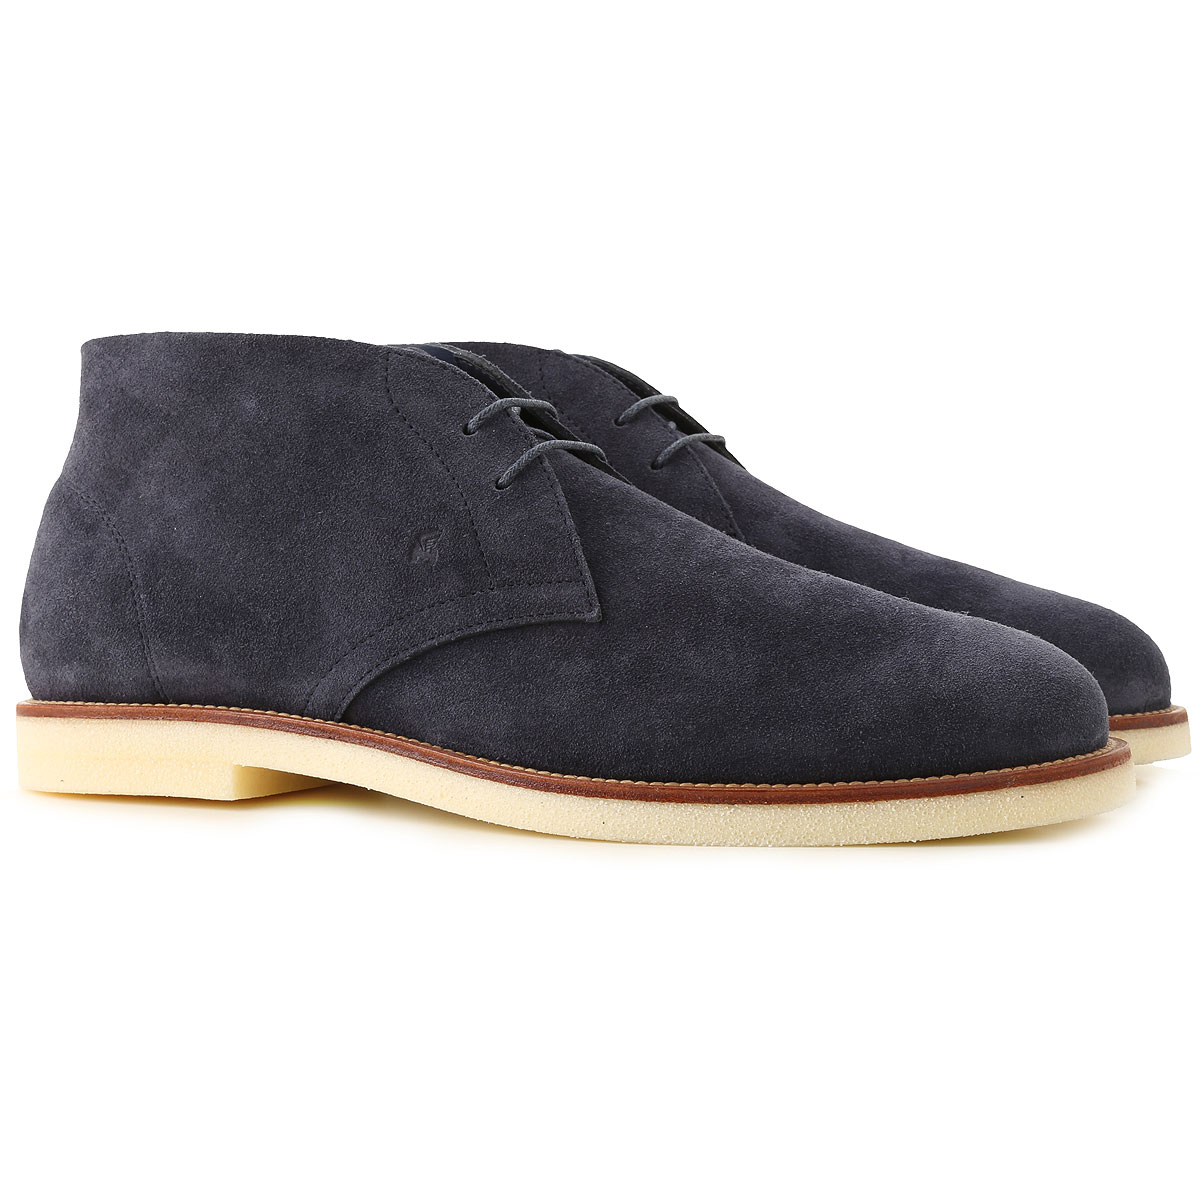 Hogan Desert Boots Chukka for Men On Sale, Blue, Suede leather, 2019, 10 10.5 12 7 7.5 8 8.5 9 9.5